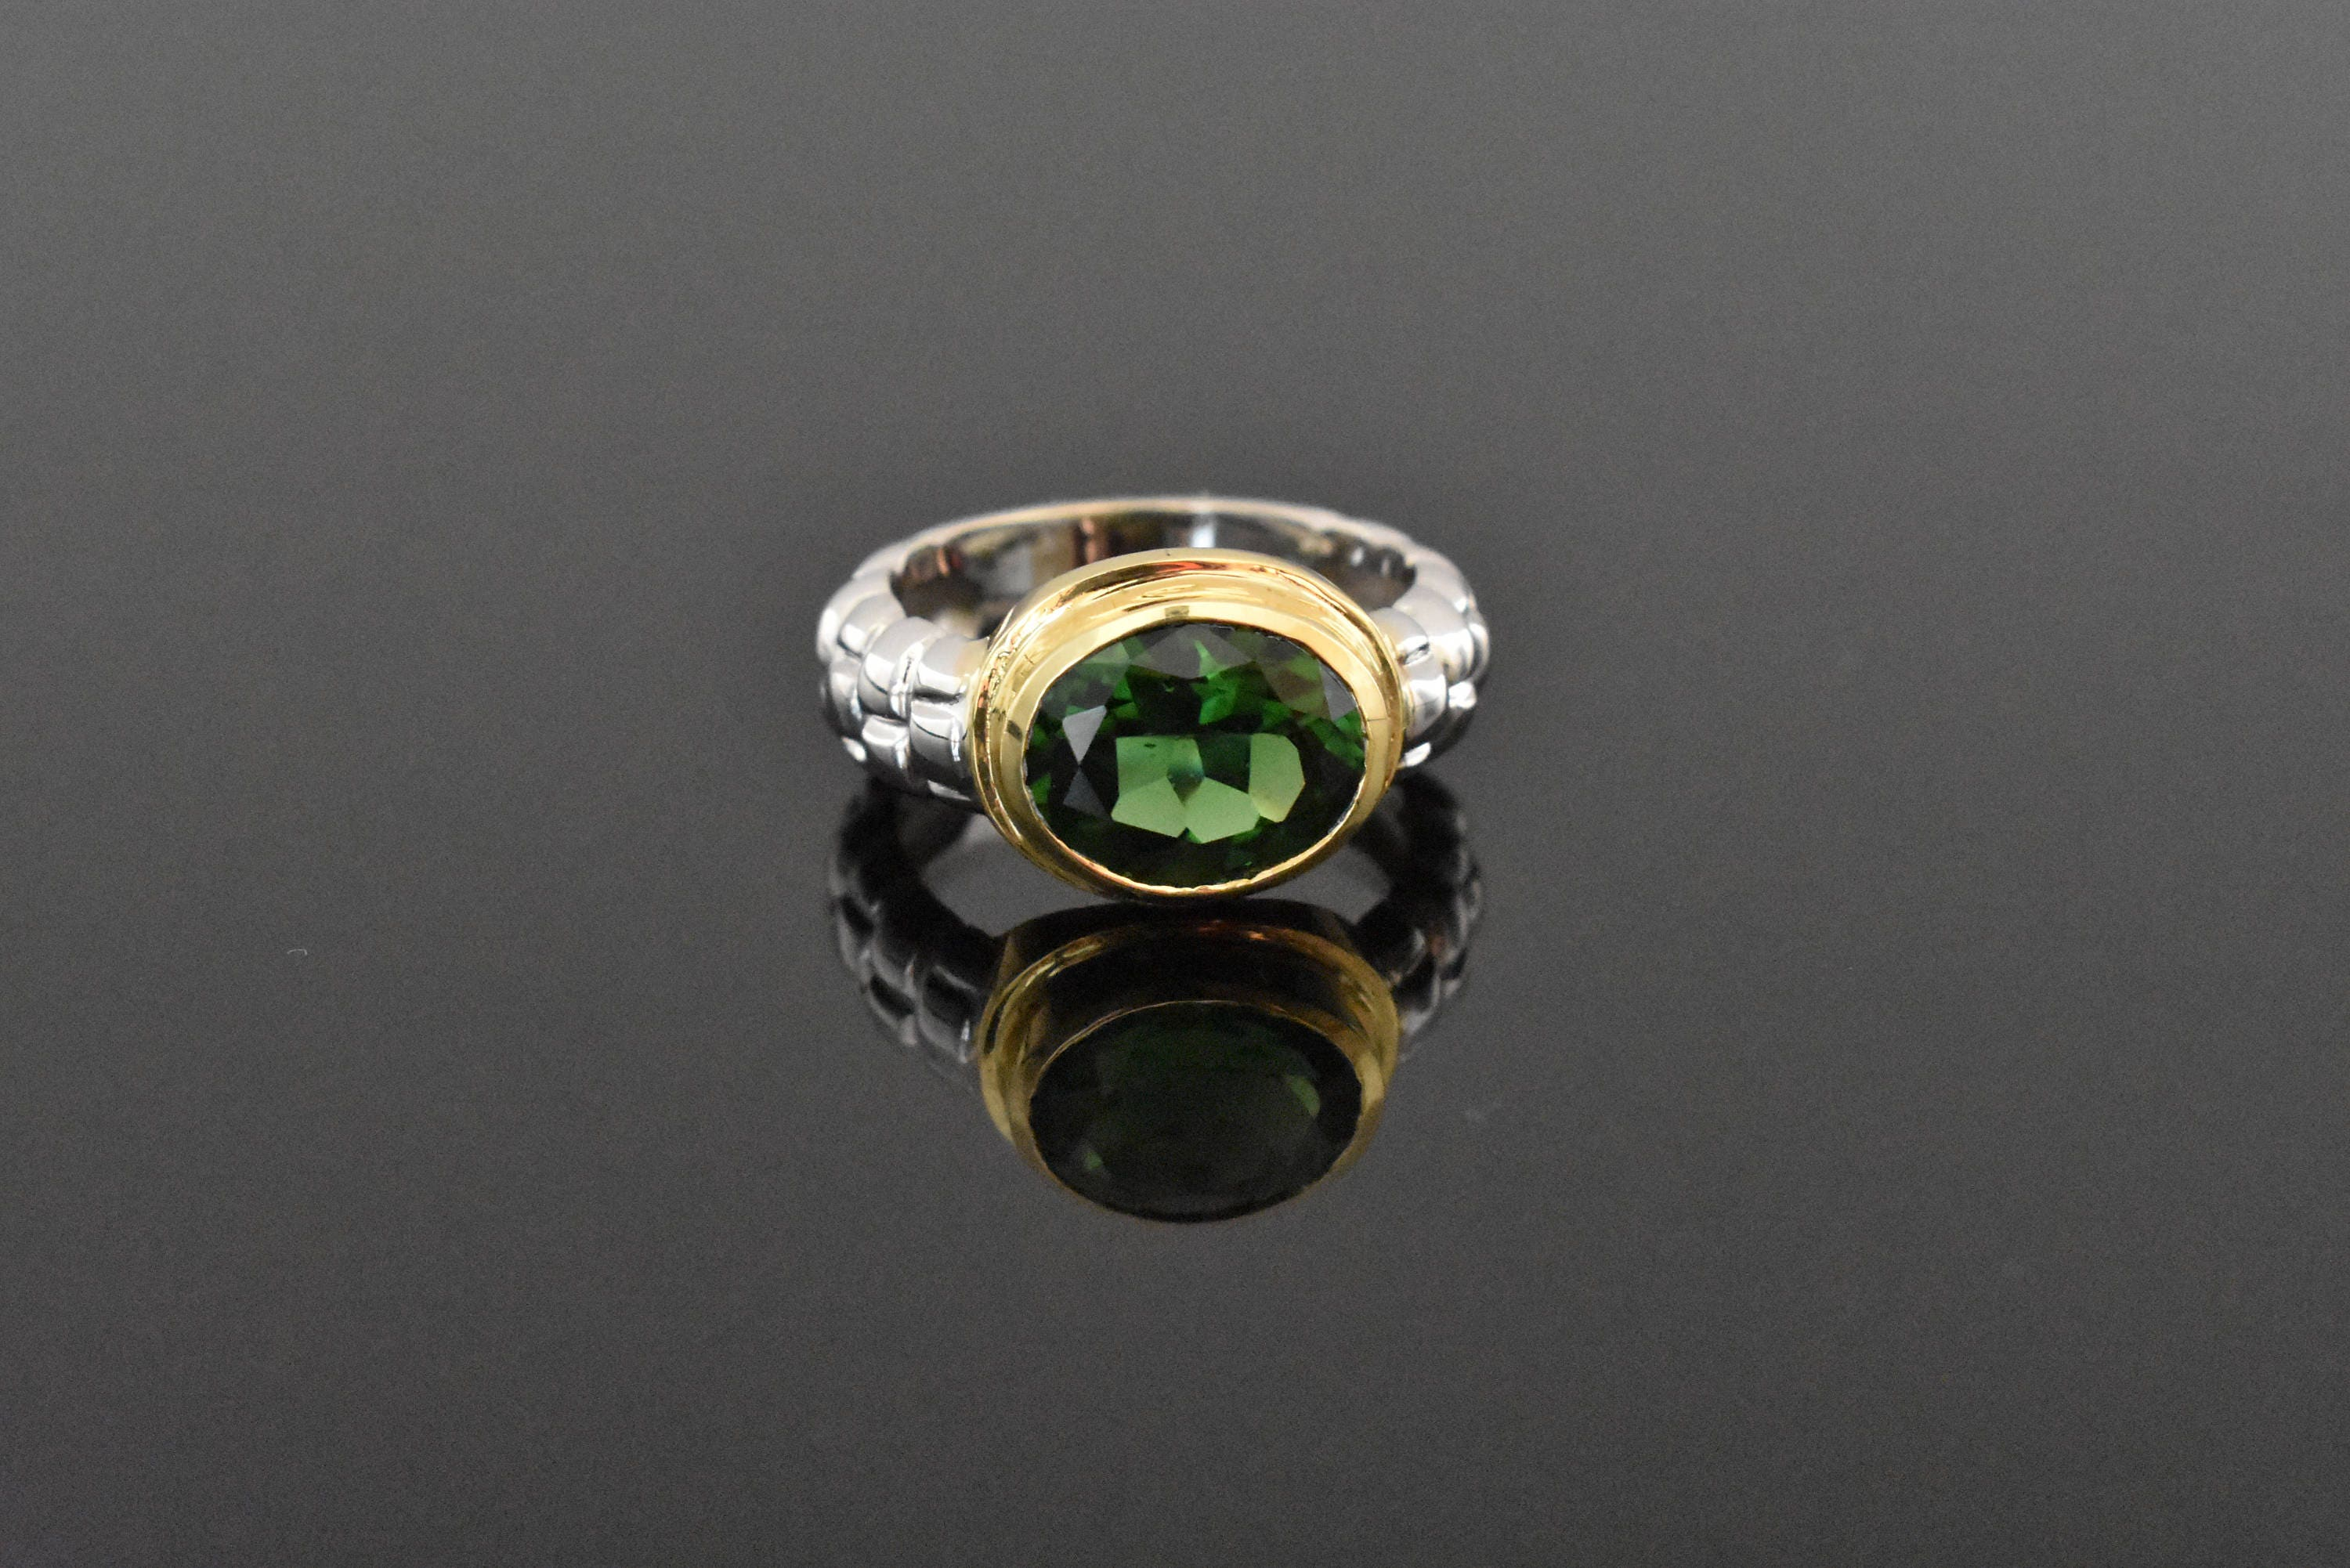 size stone weighs yellow three grams in oval this a ring tourmaline shank green and measures estate is gold band the approx img rings diamond vintage